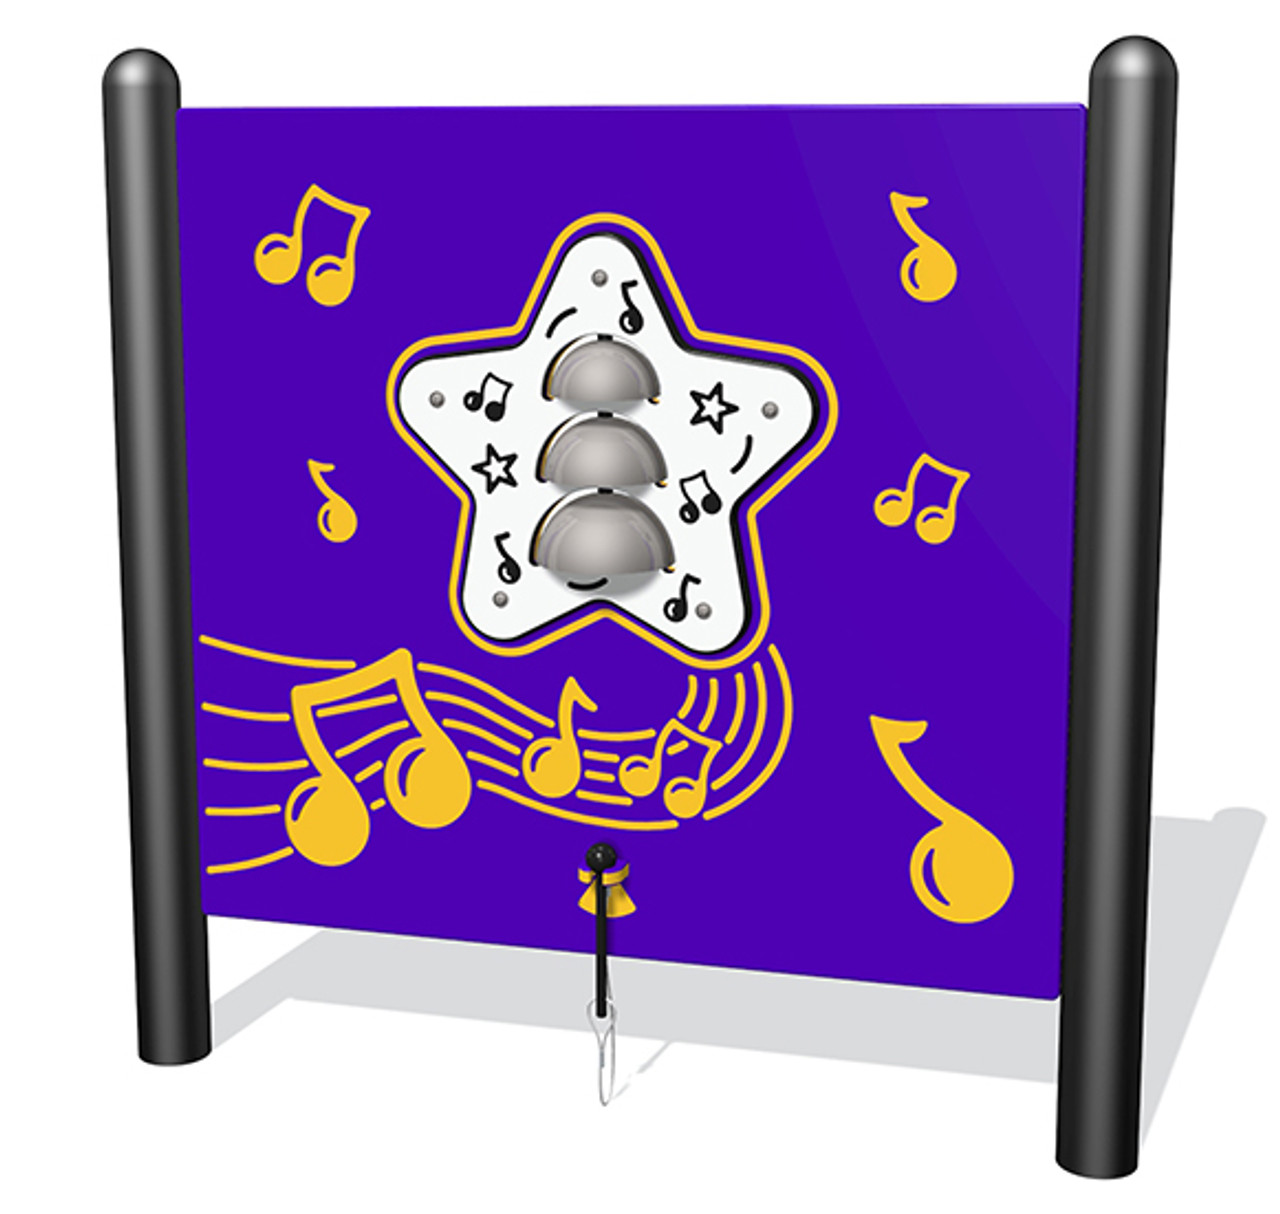 Musical Activity Panel Components